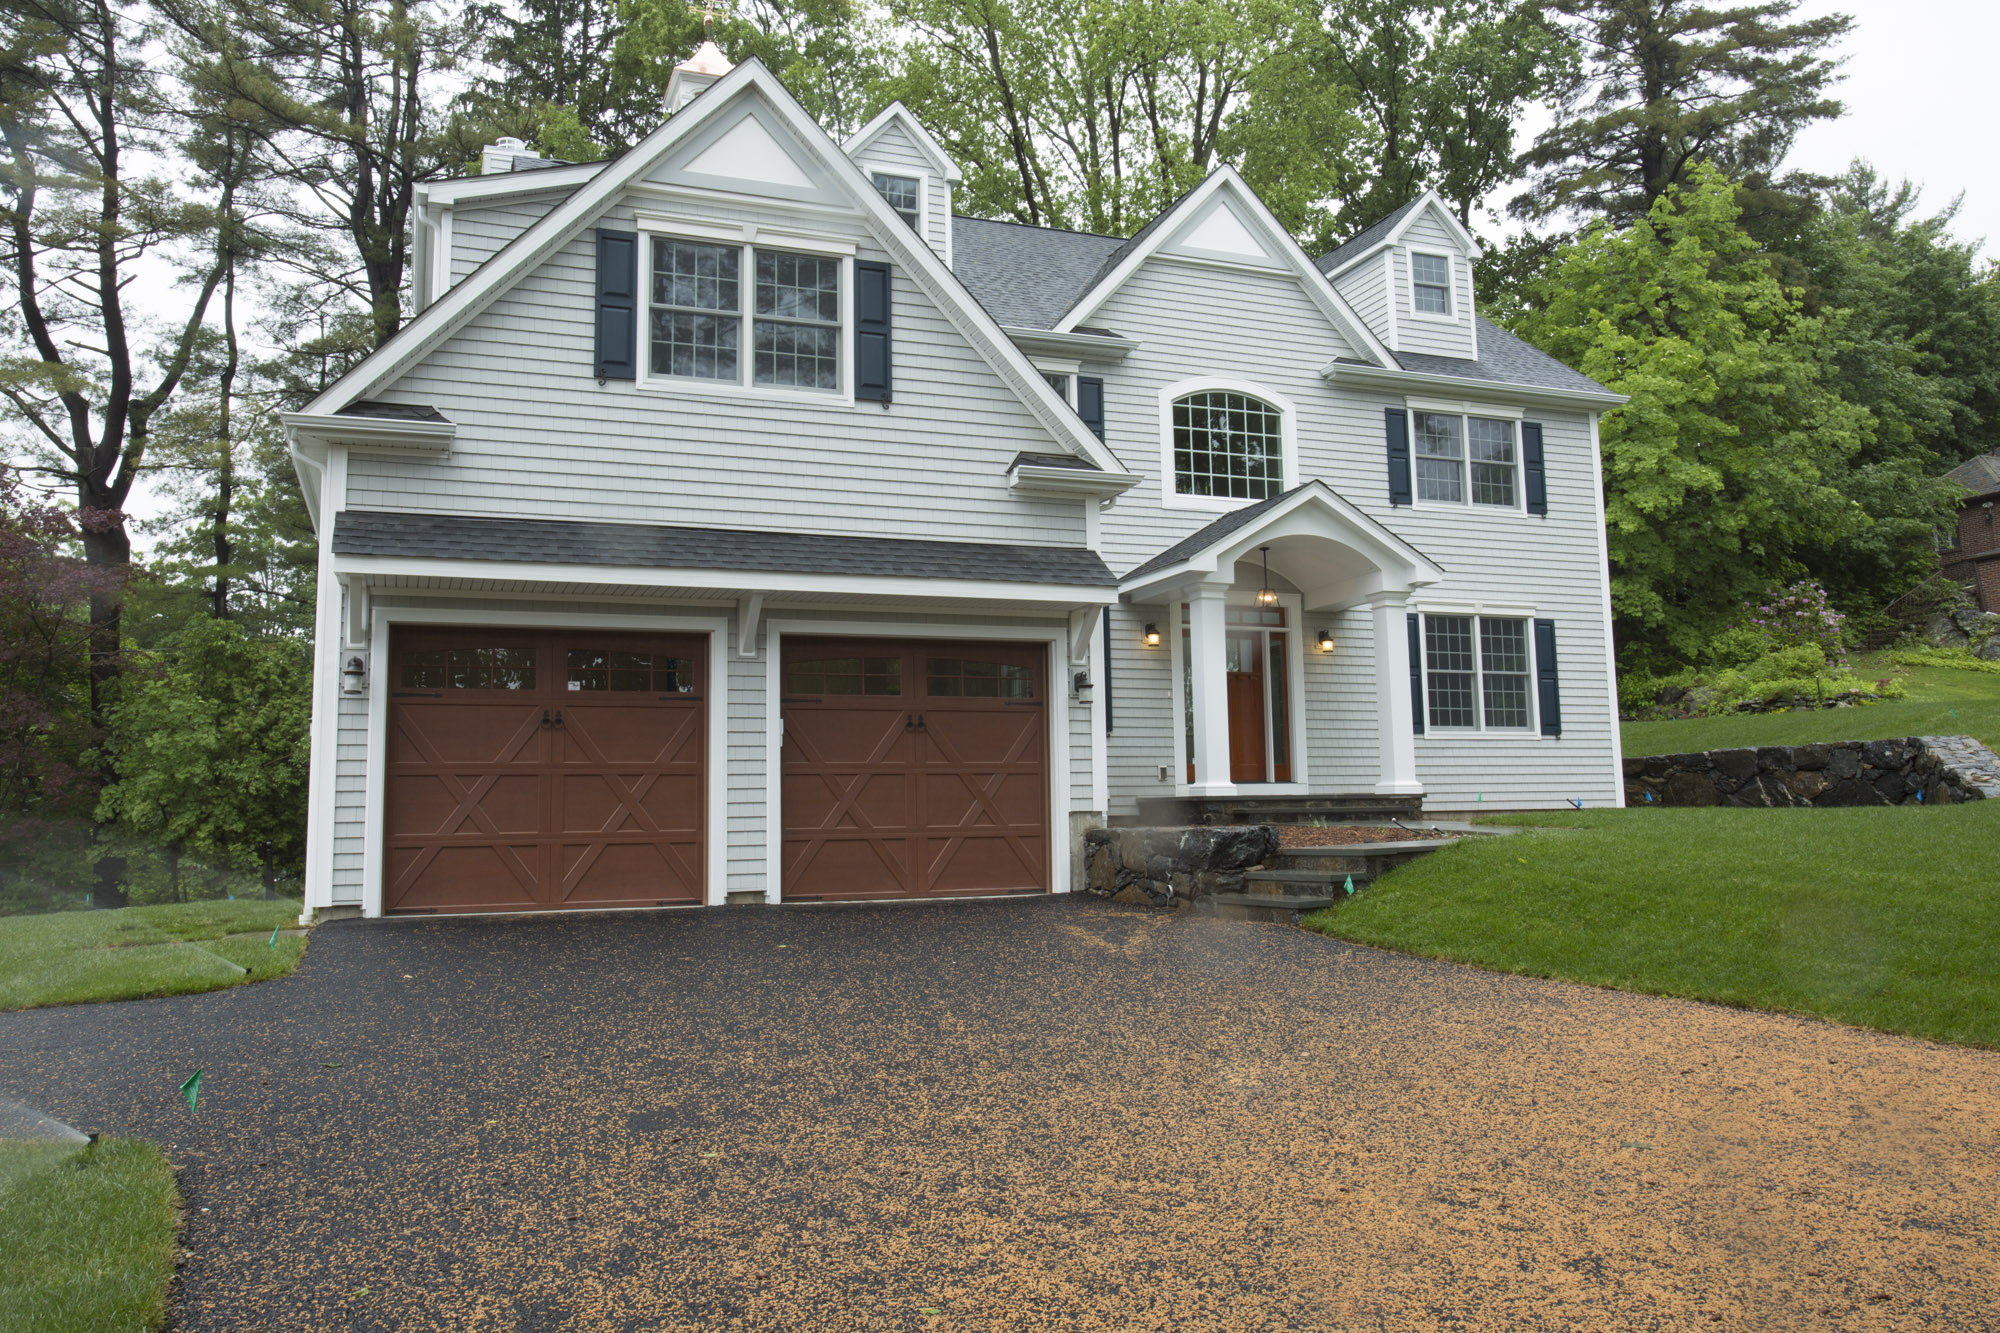 Coyle modular homes new custom home in greenwich ct for Ct home builders